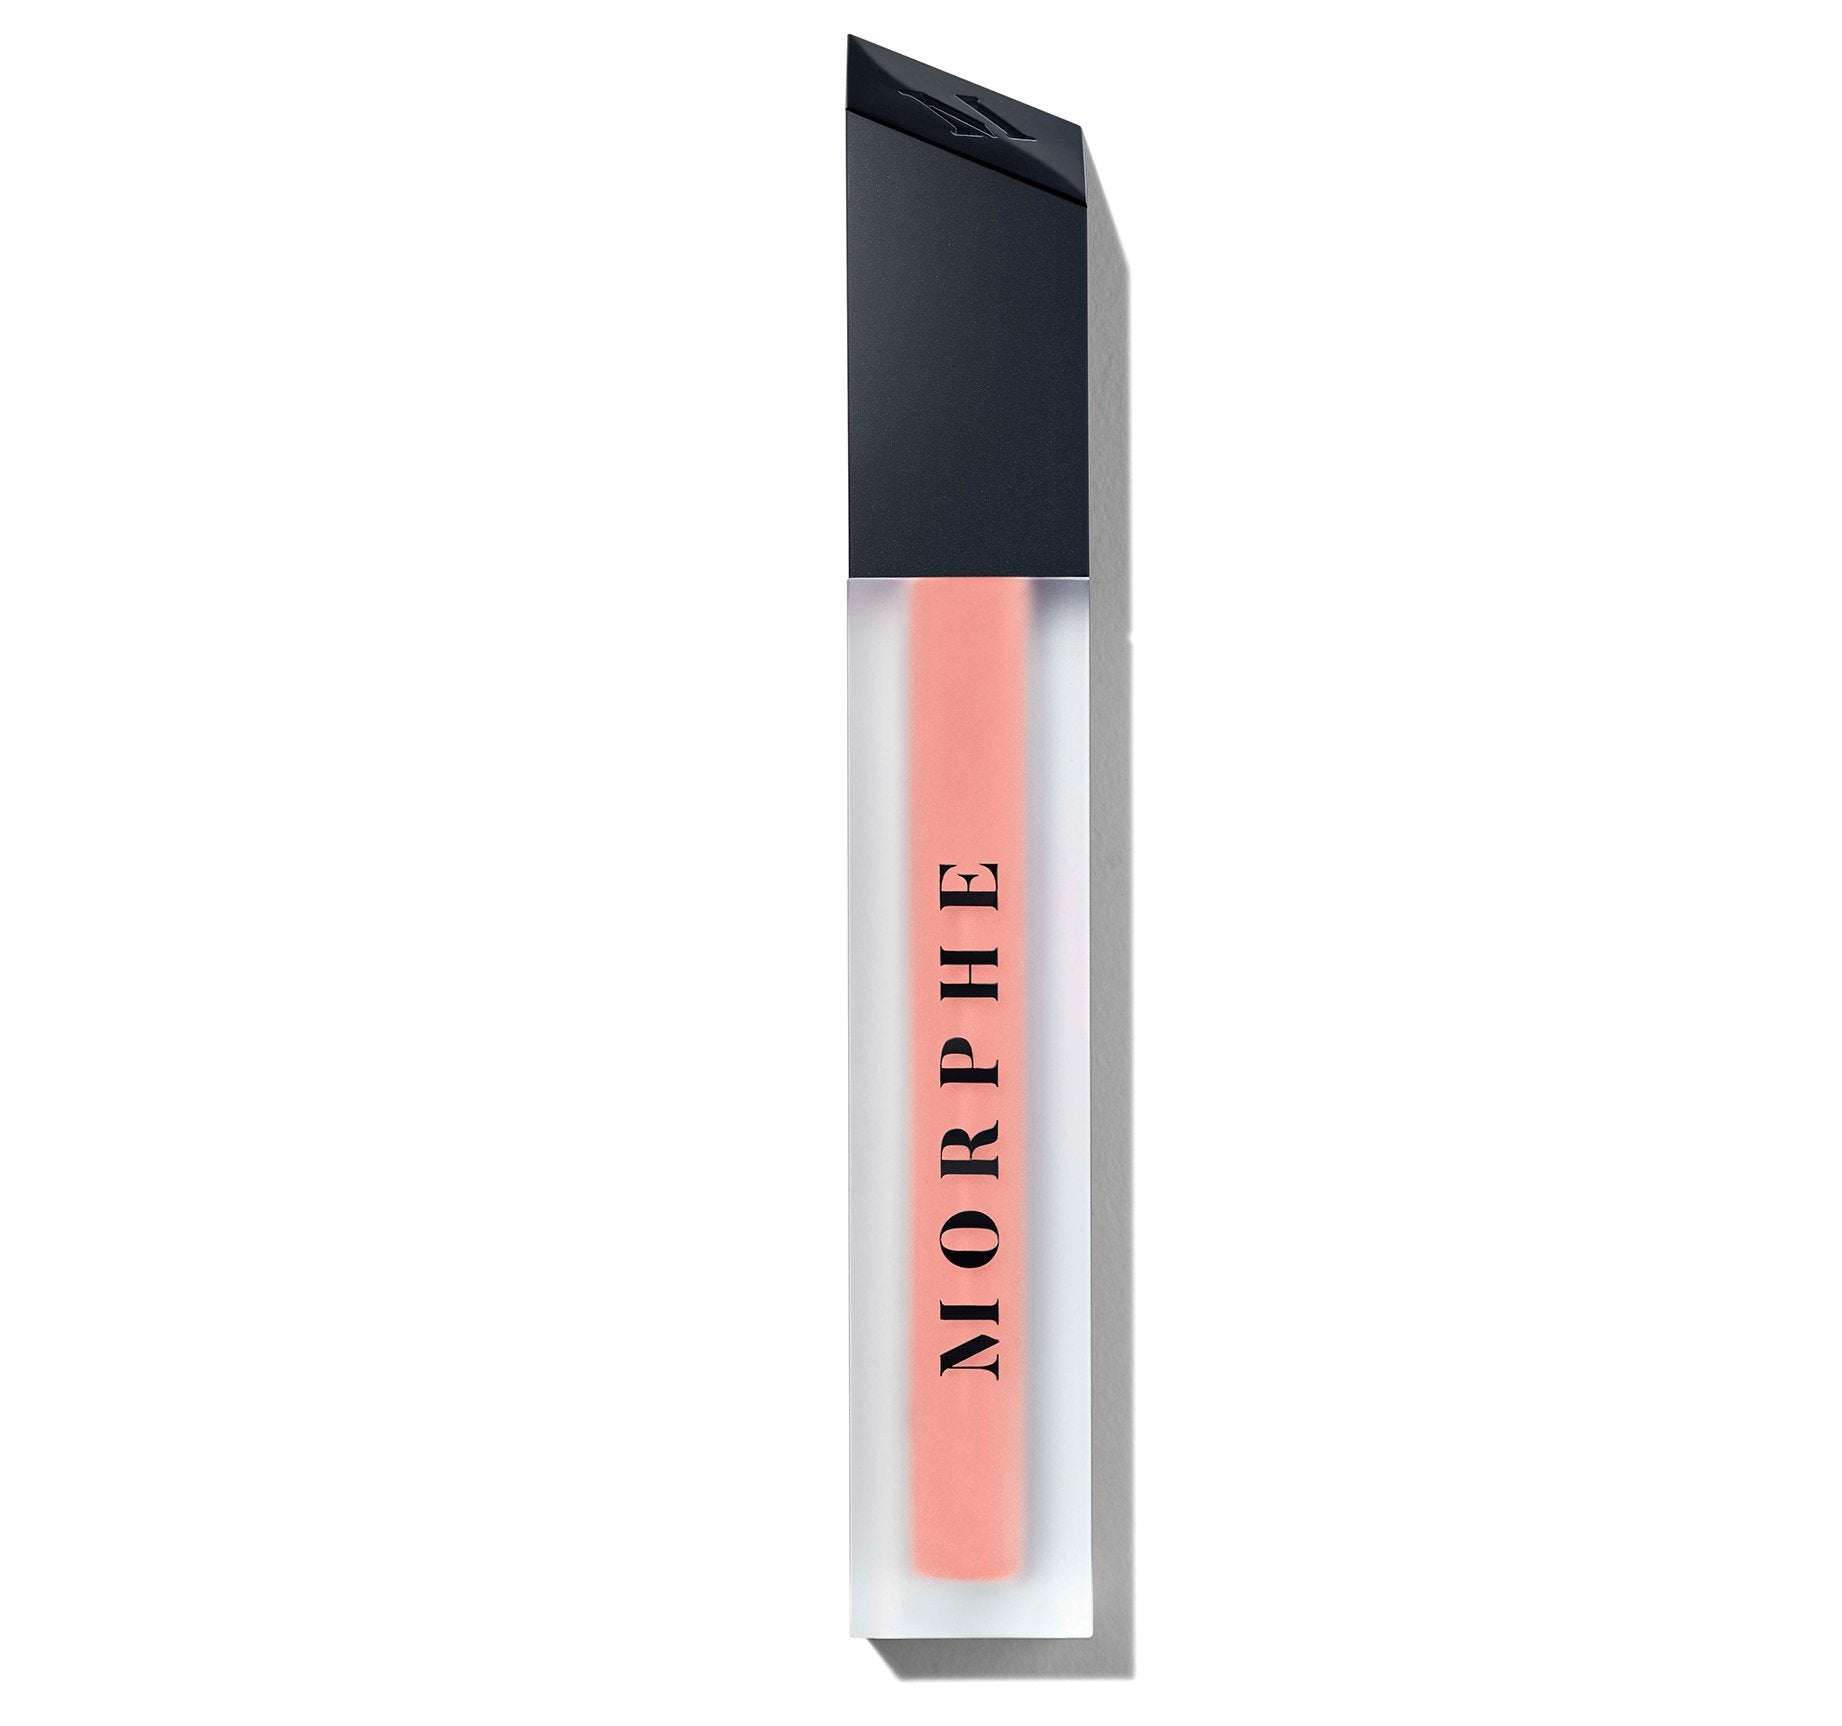 MATTE LIQUID LIPSTICK - VIRGIN, view larger image